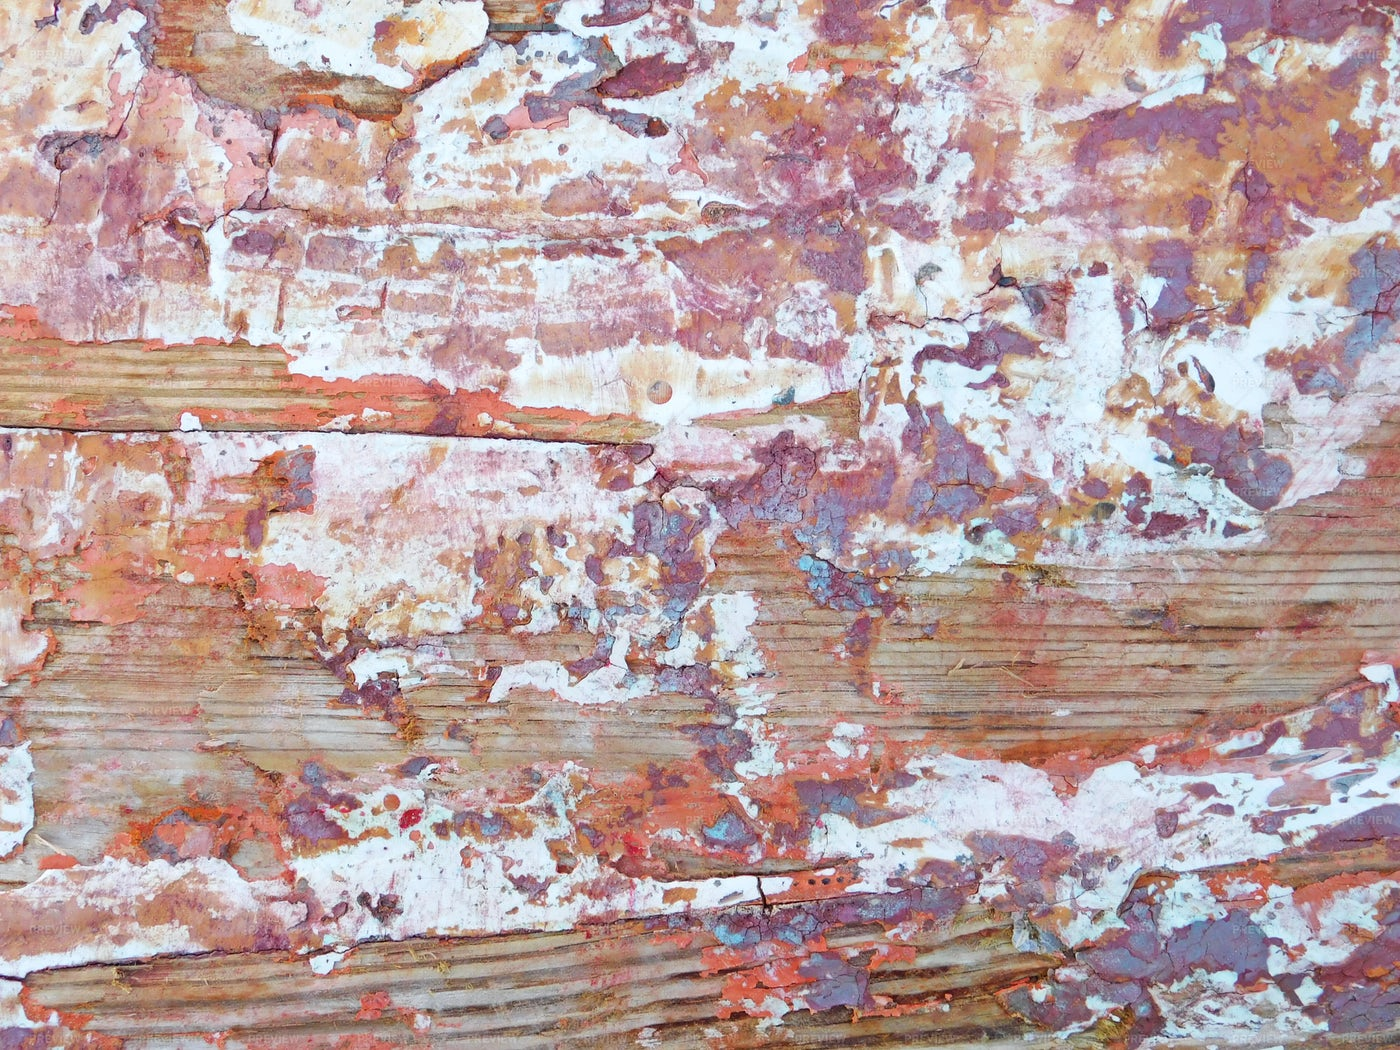 Abstract Texture On Wood: Stock Photos